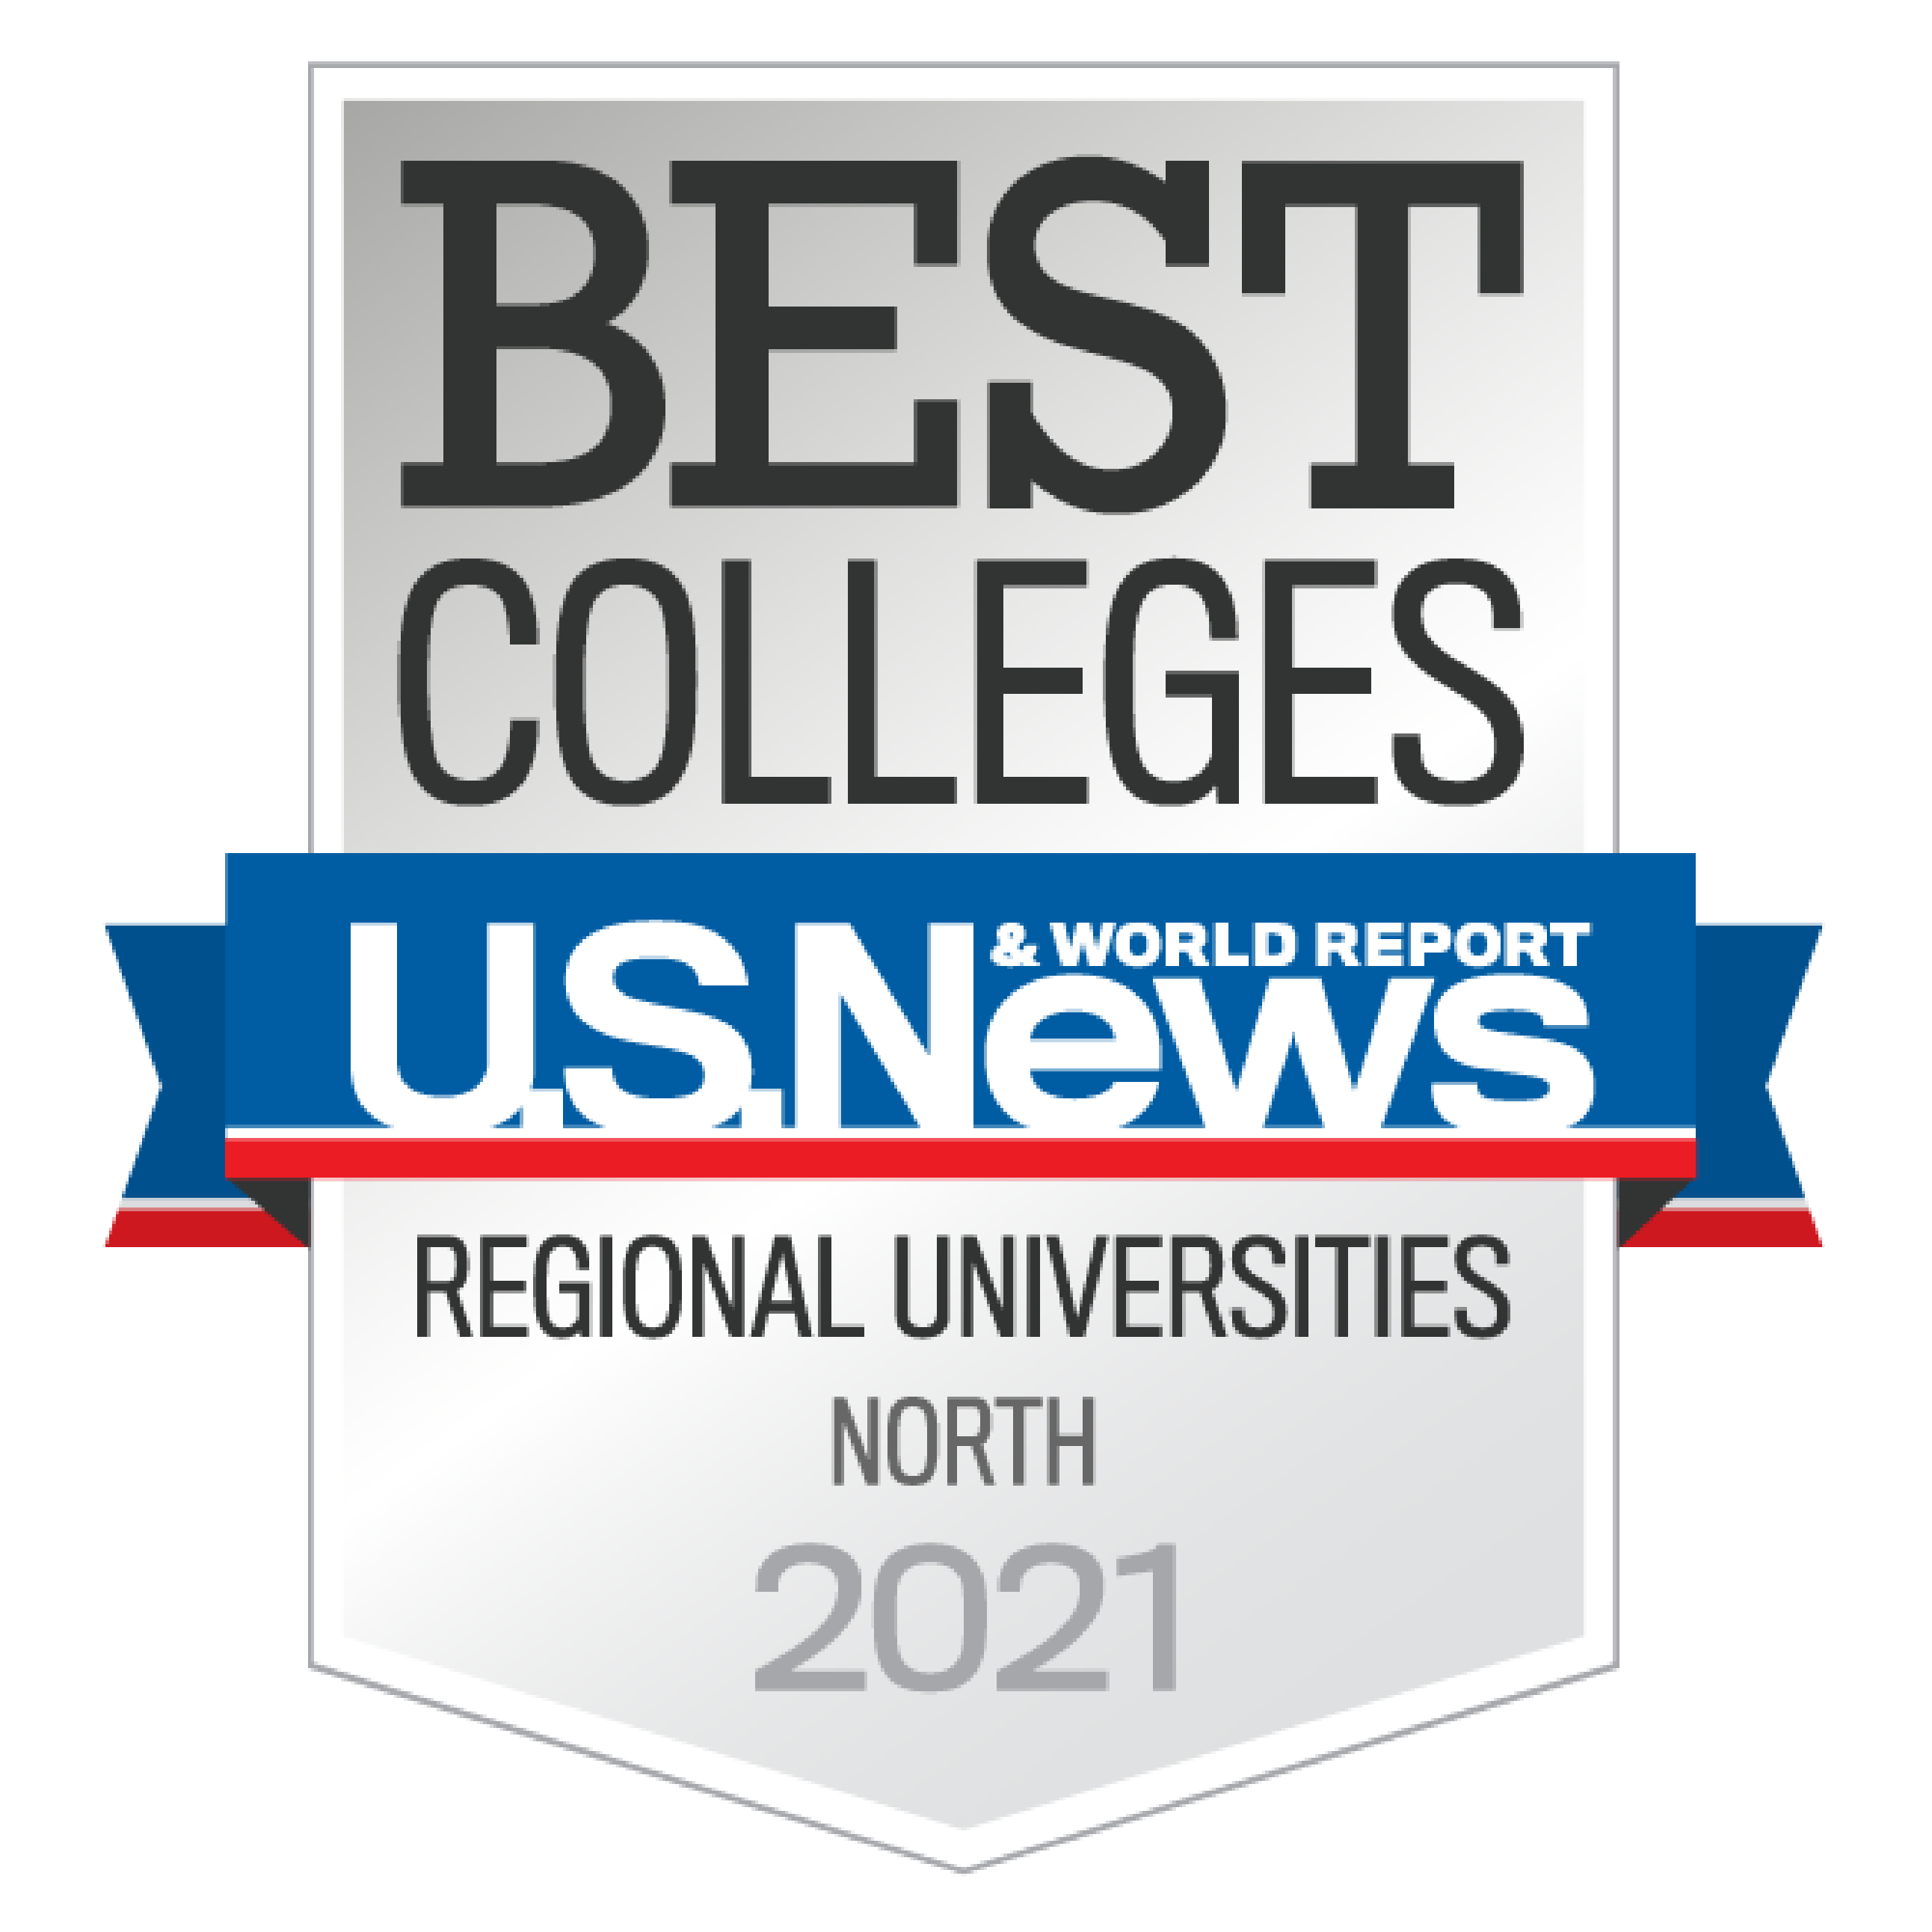 U.S. News & World Report BEST Colleges banner 2021